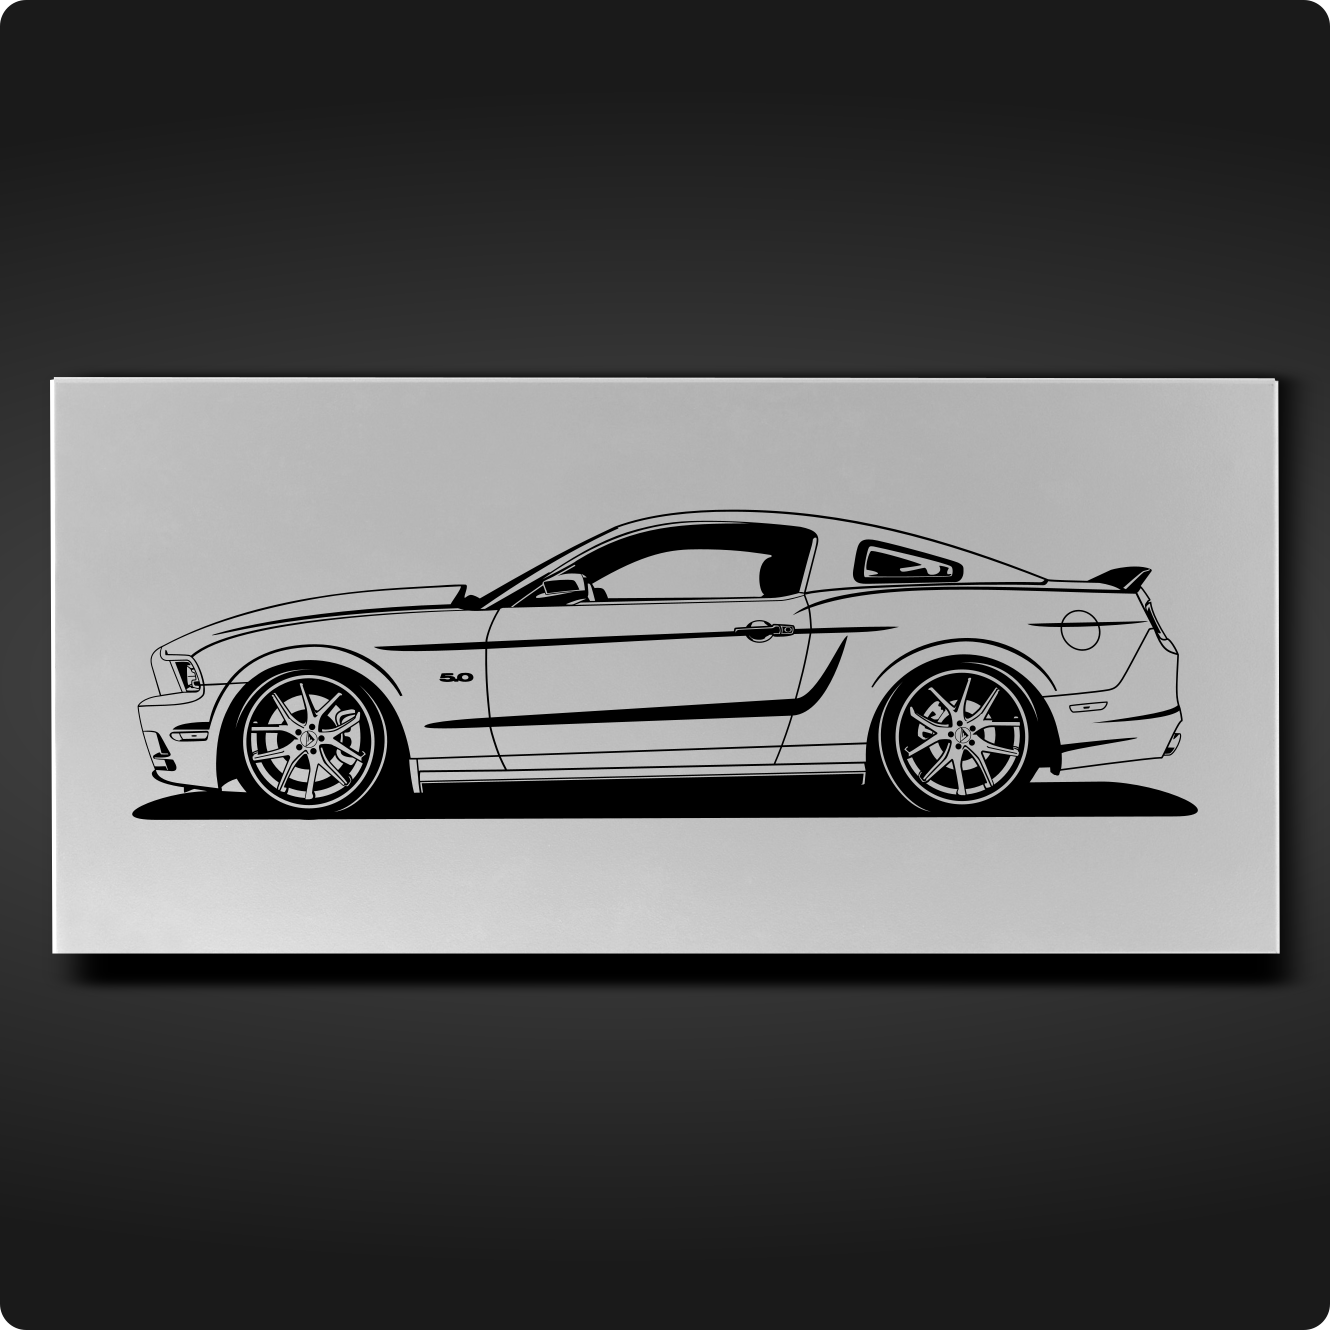 Ford mustang 5 0 2014 modified